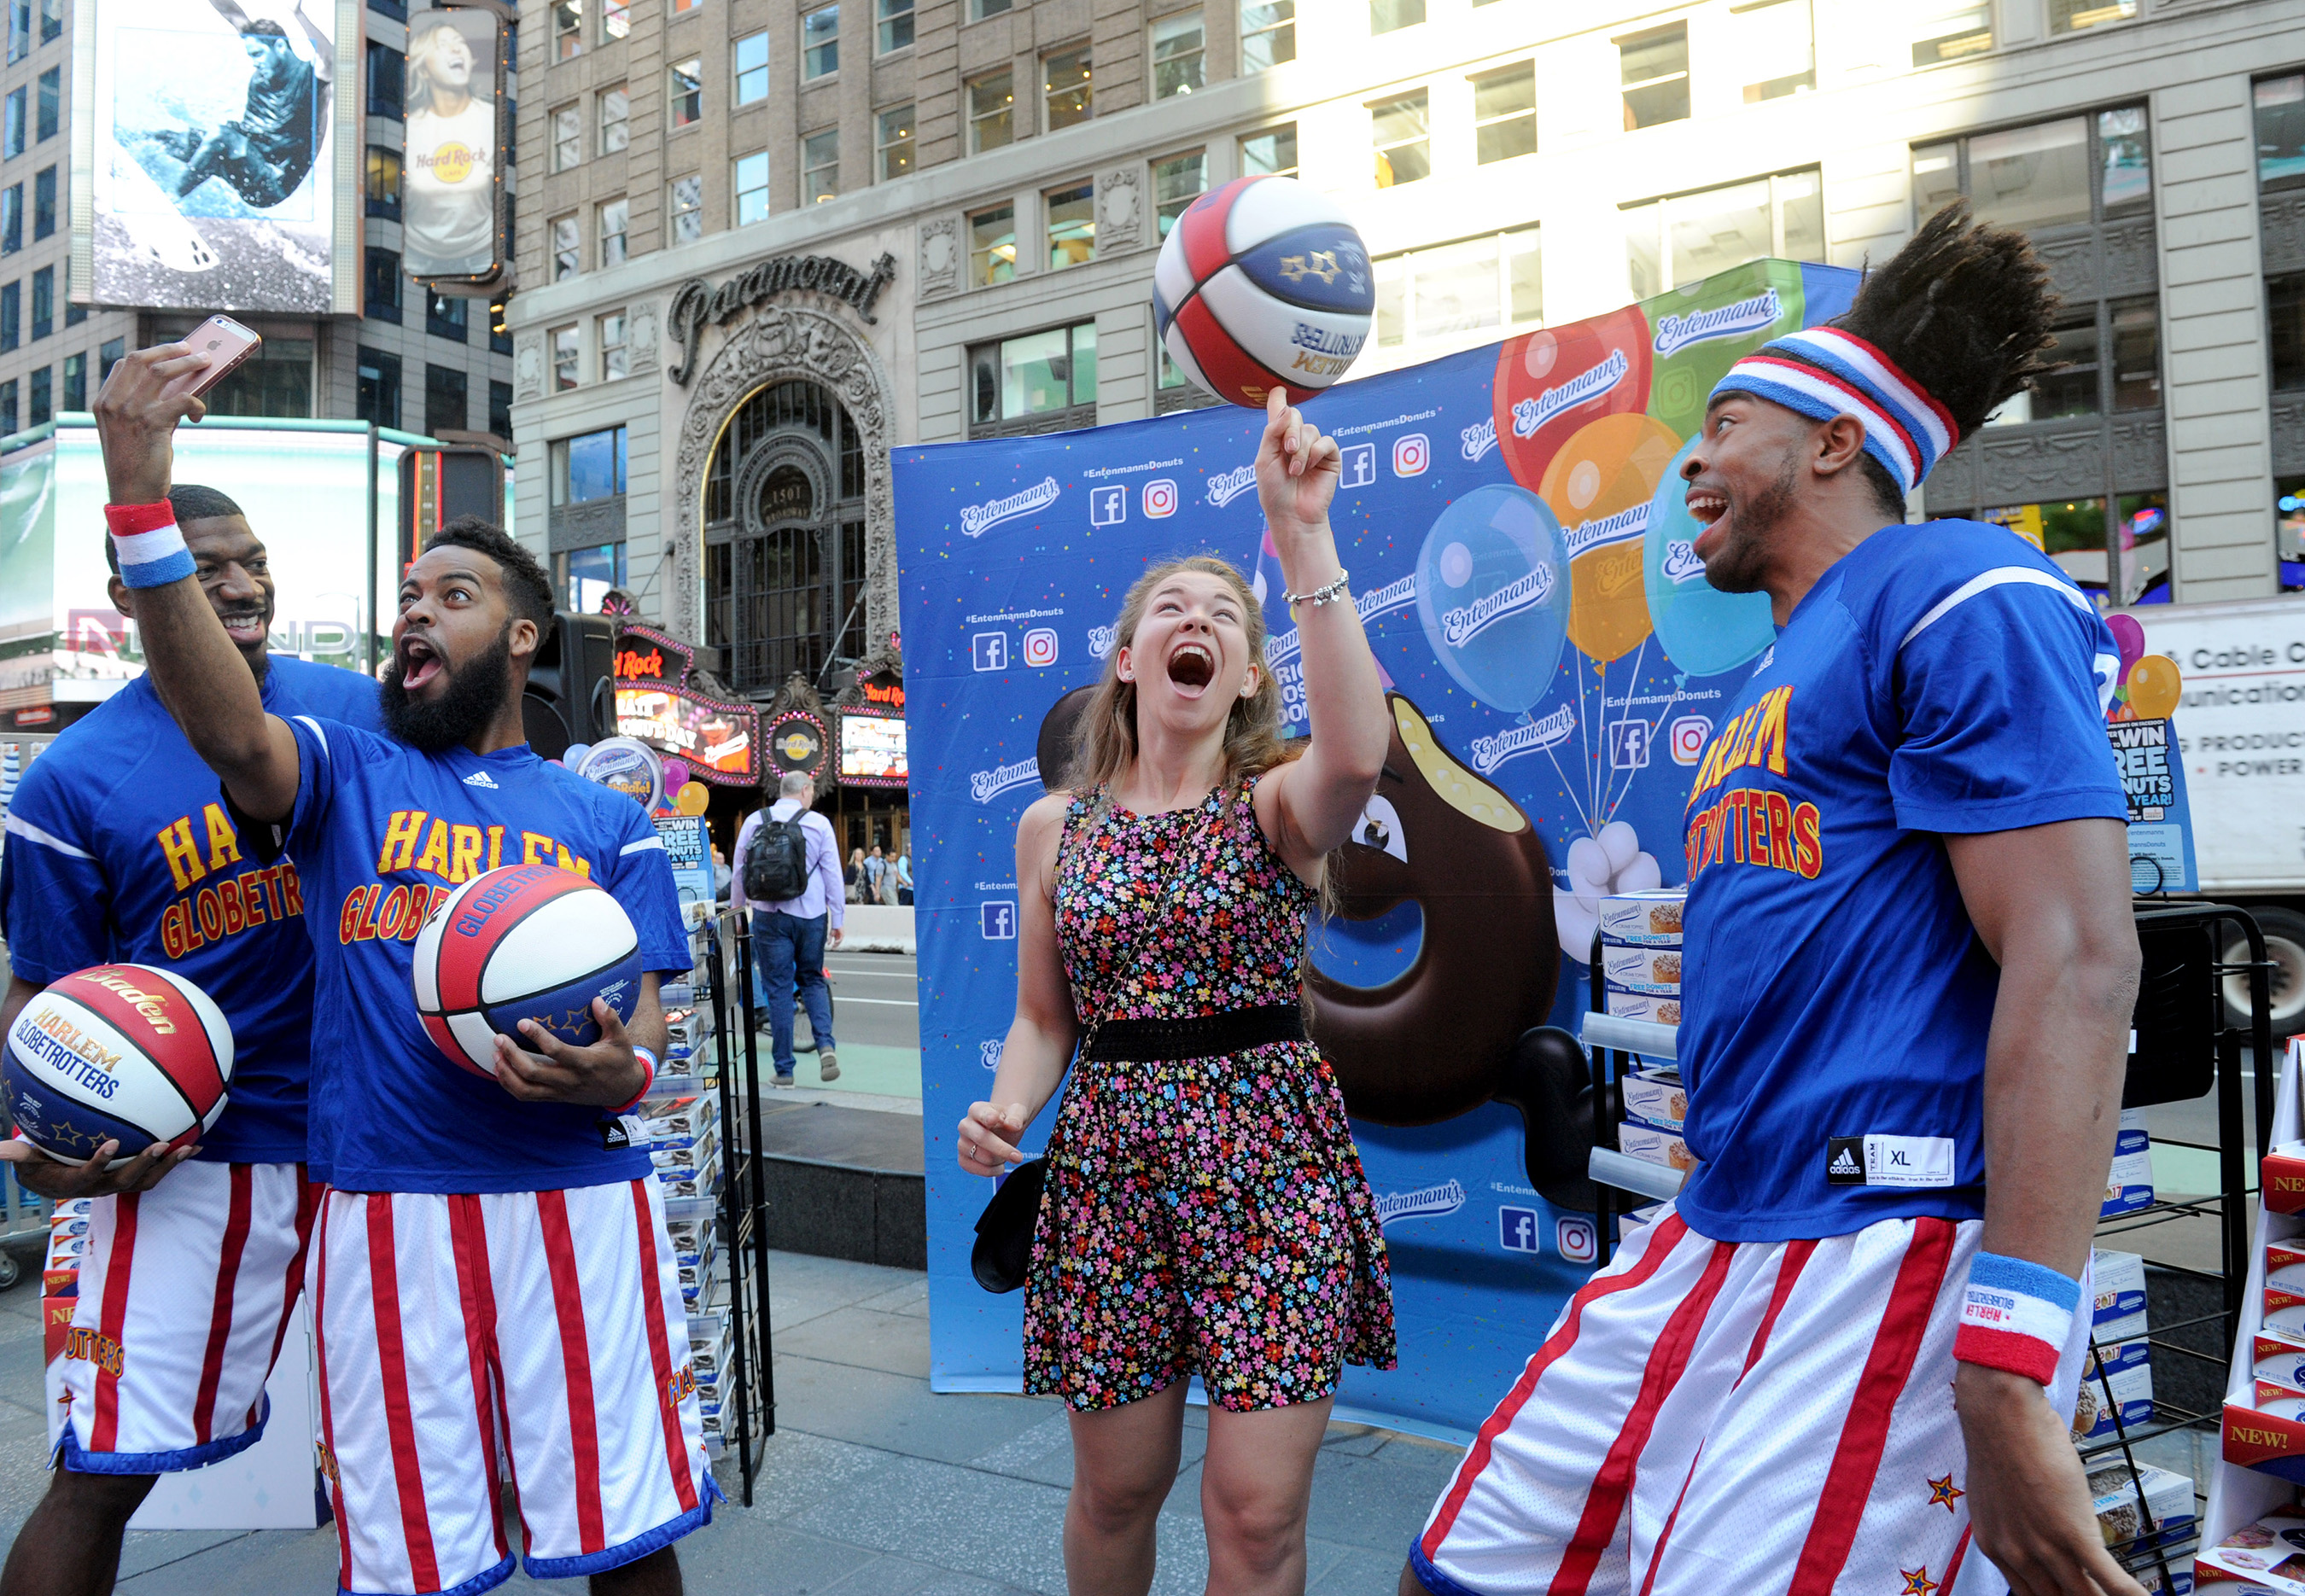 A fan celebrates National Donut Day with Entenmann's and the world famous Harlem Globetrotters in New York's Times Square, Friday, June 2, 2017.